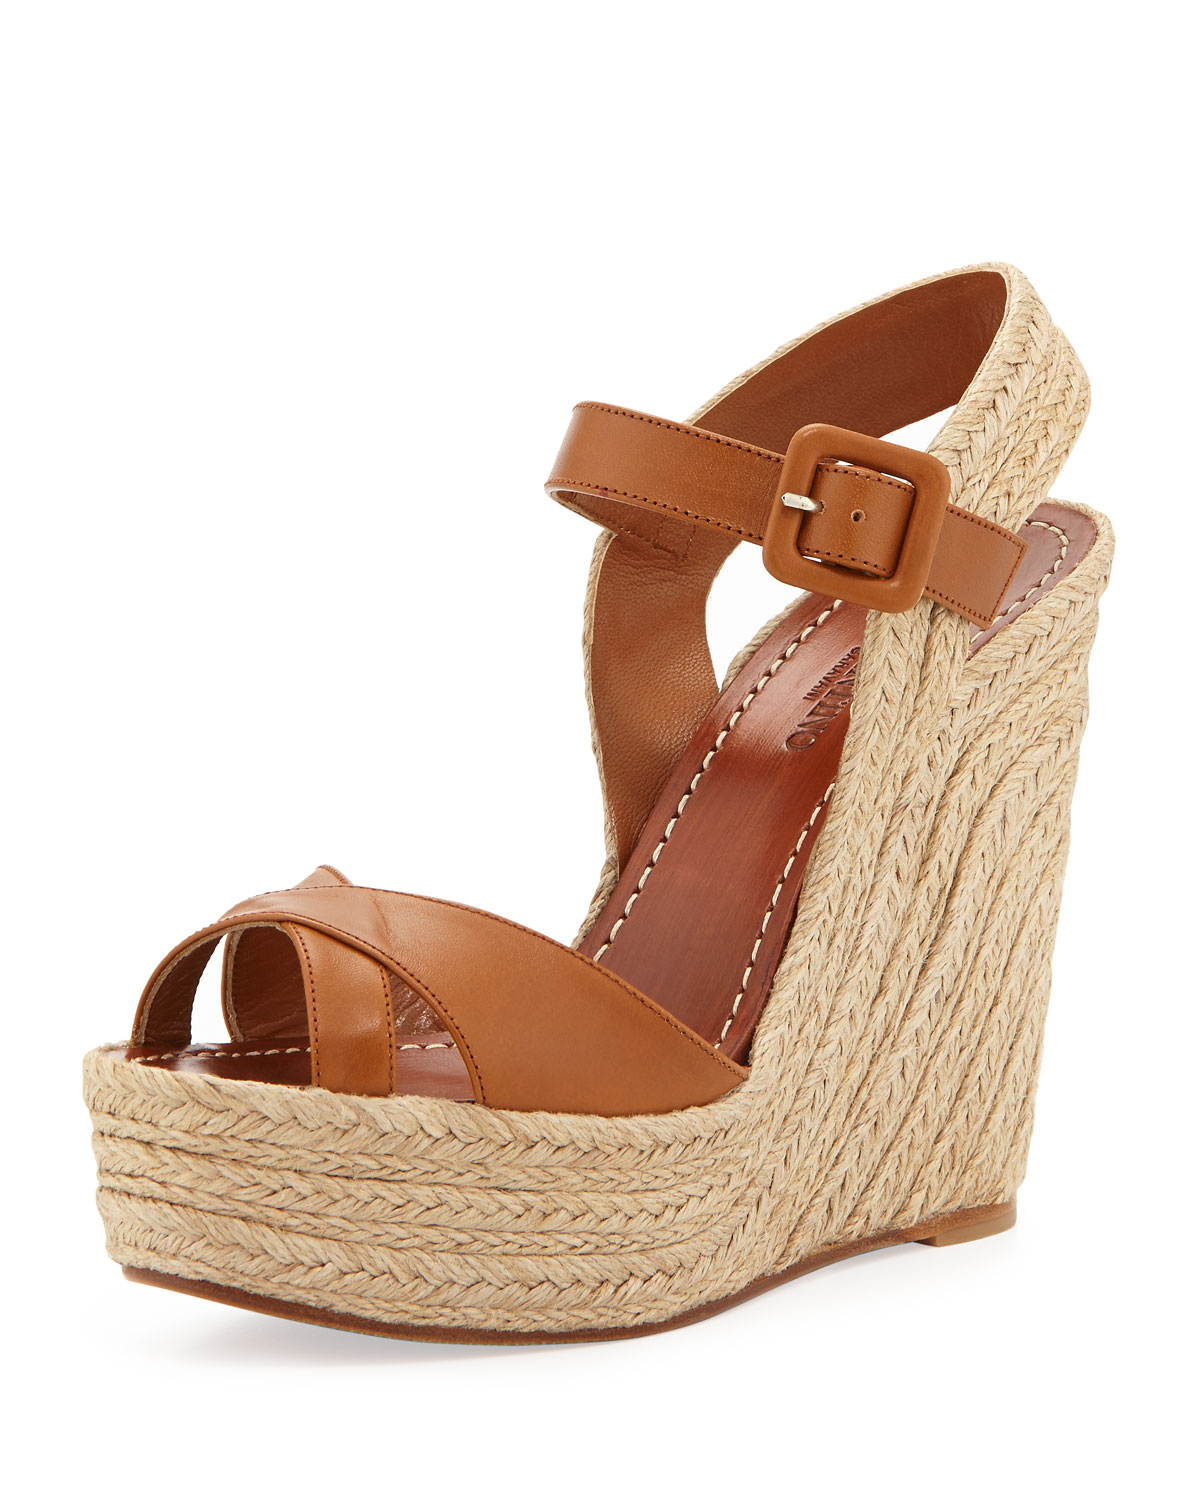 Valentino Crisscross Leather Espadrille Wedge In Brown Lyst